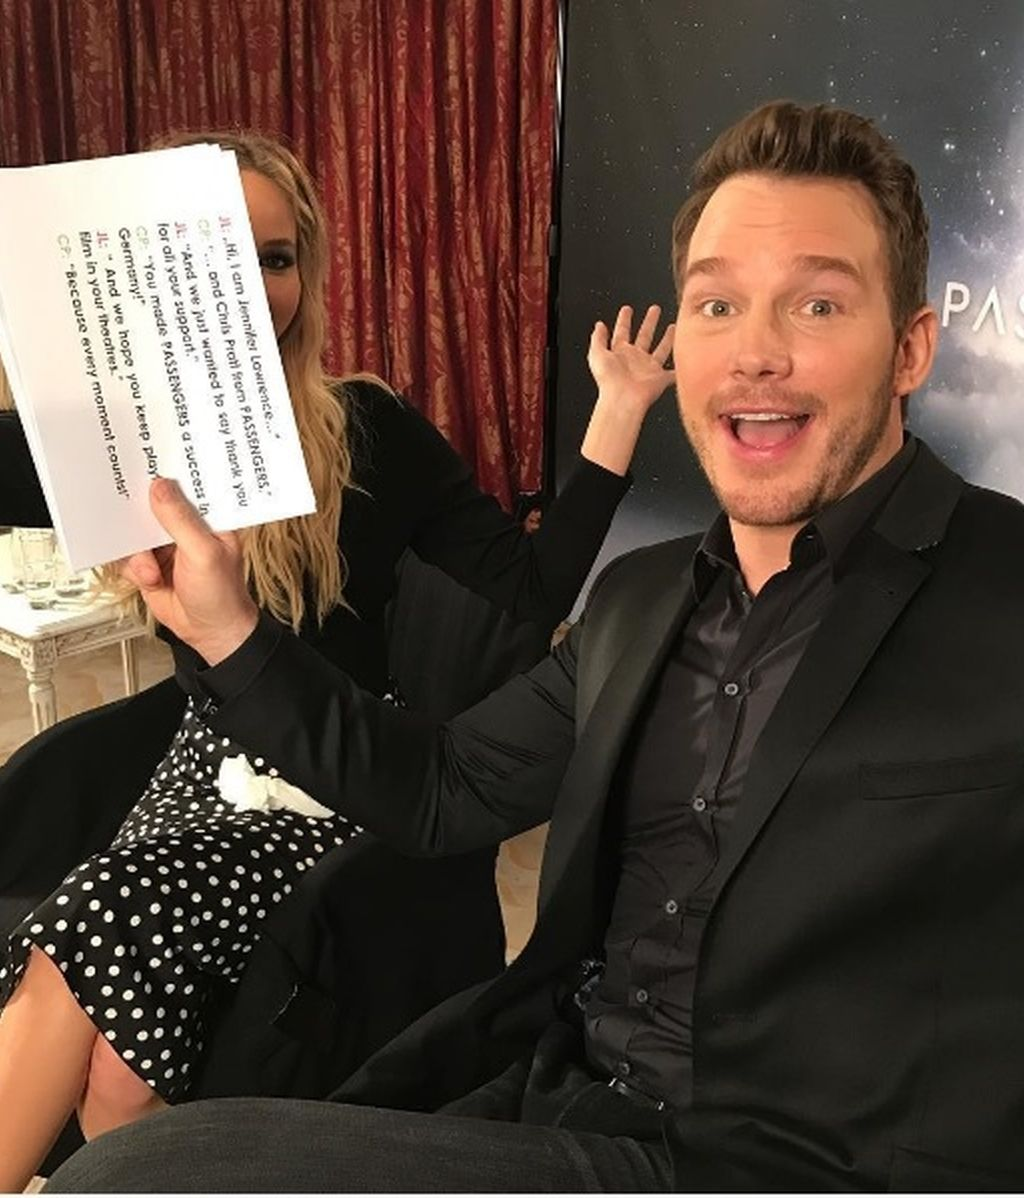 La divertida broma de Chris Pratt a Jennifer Lawrence: la recorta en todas las fotos